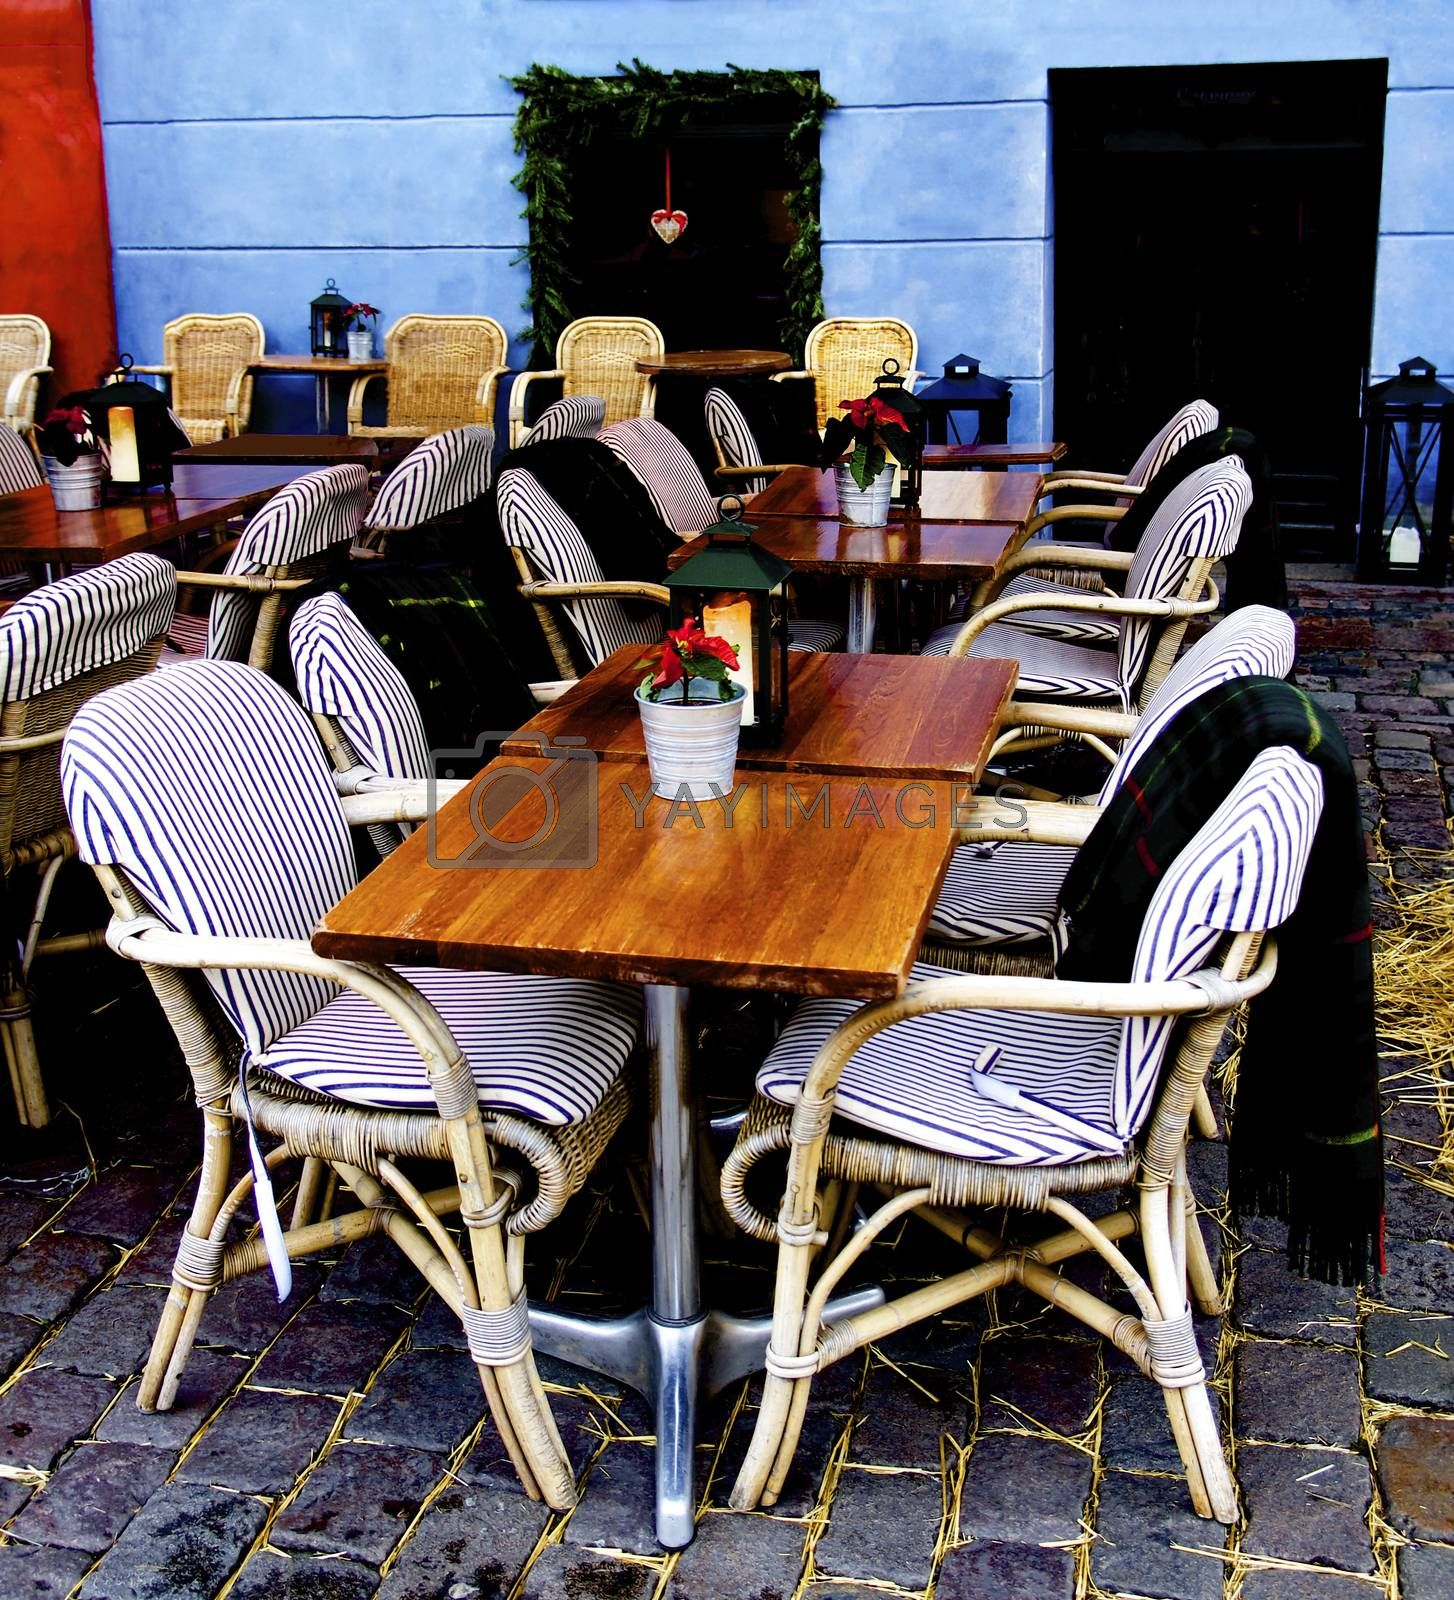 December Rustic Sidewalk Cafe with Wooden Tables, Flower Pot of Poinsettia and Plaids on Wicker Chair Outdoors